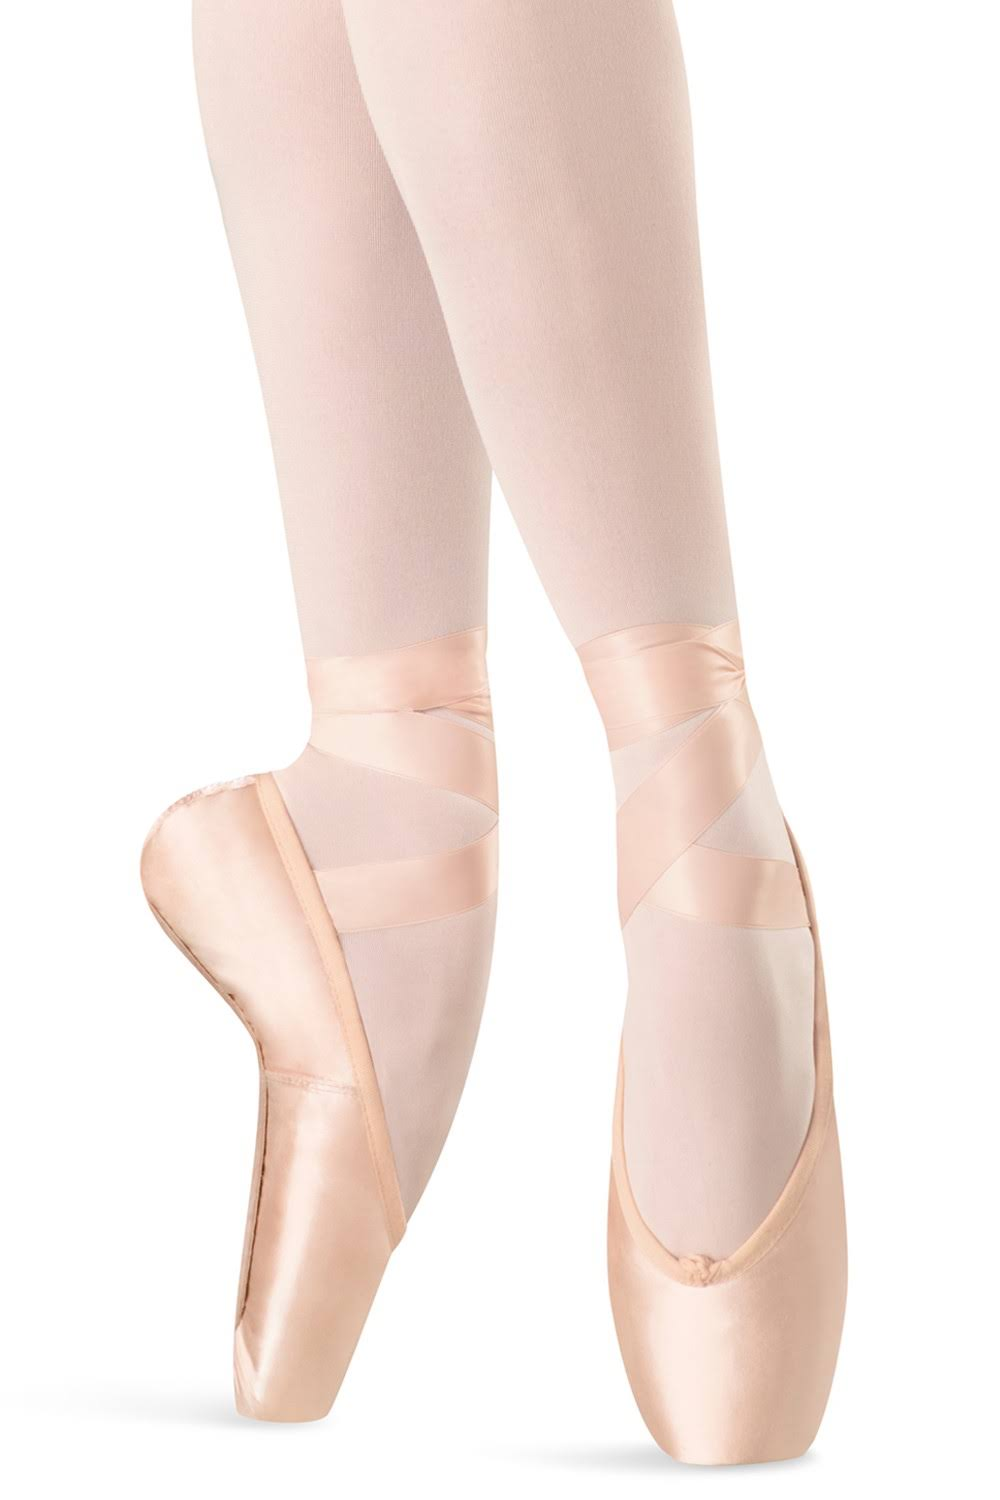 Bloch Hannah S0109L Pointe Shoes, Pink, Size 2X, 5.5